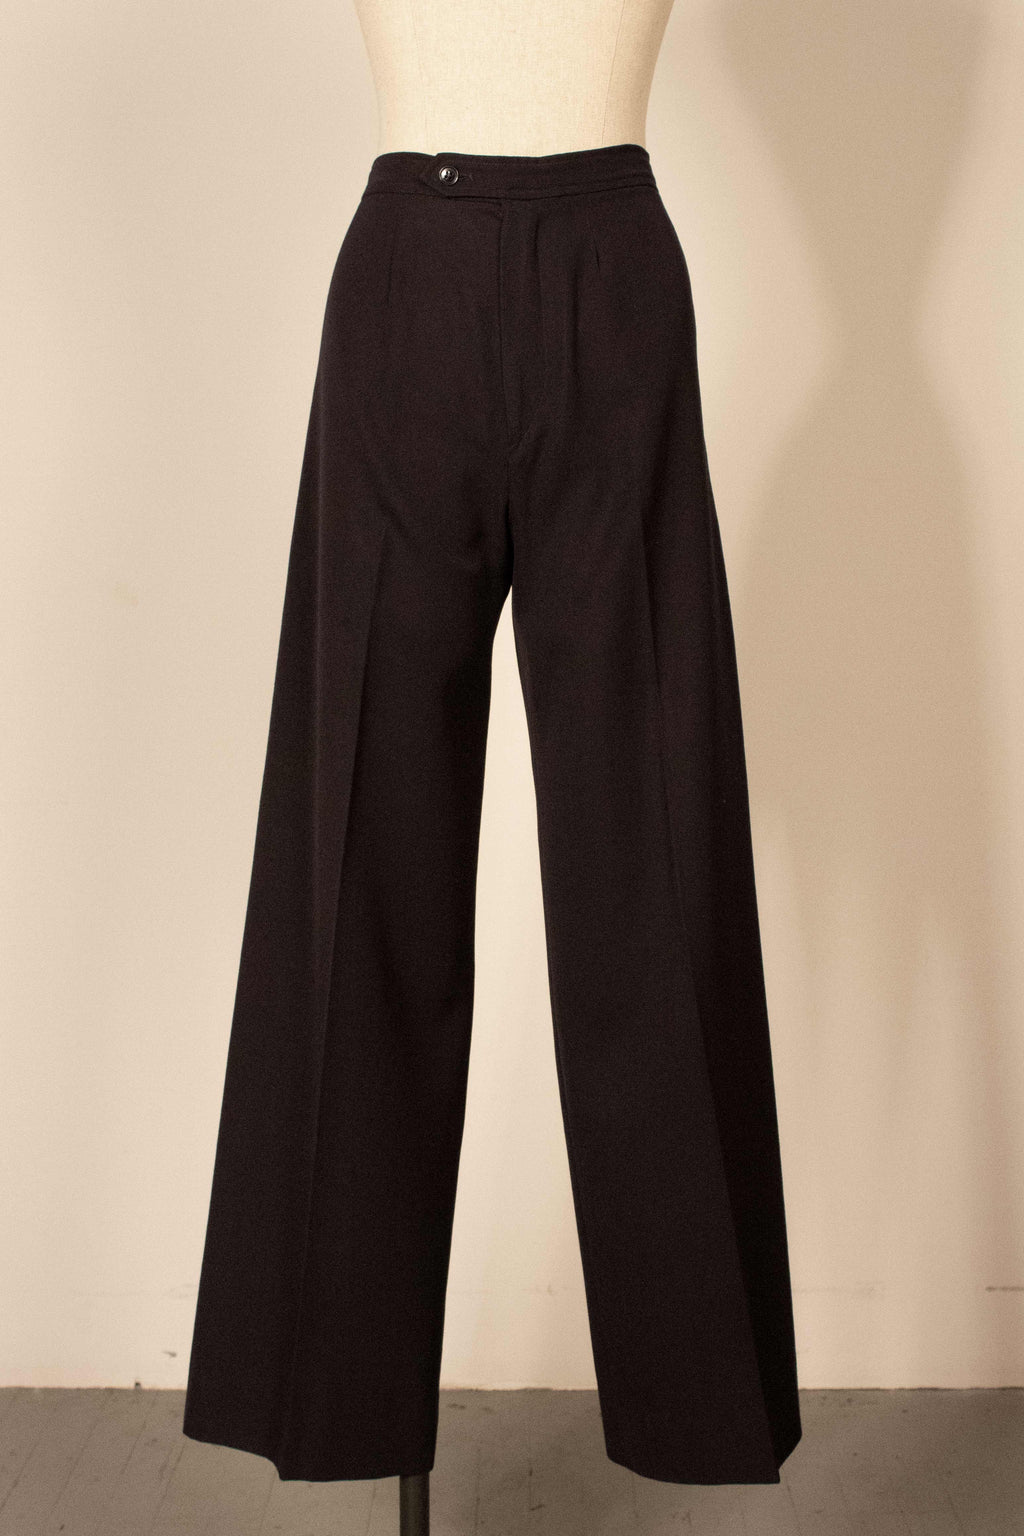 YSL navy wool trousers